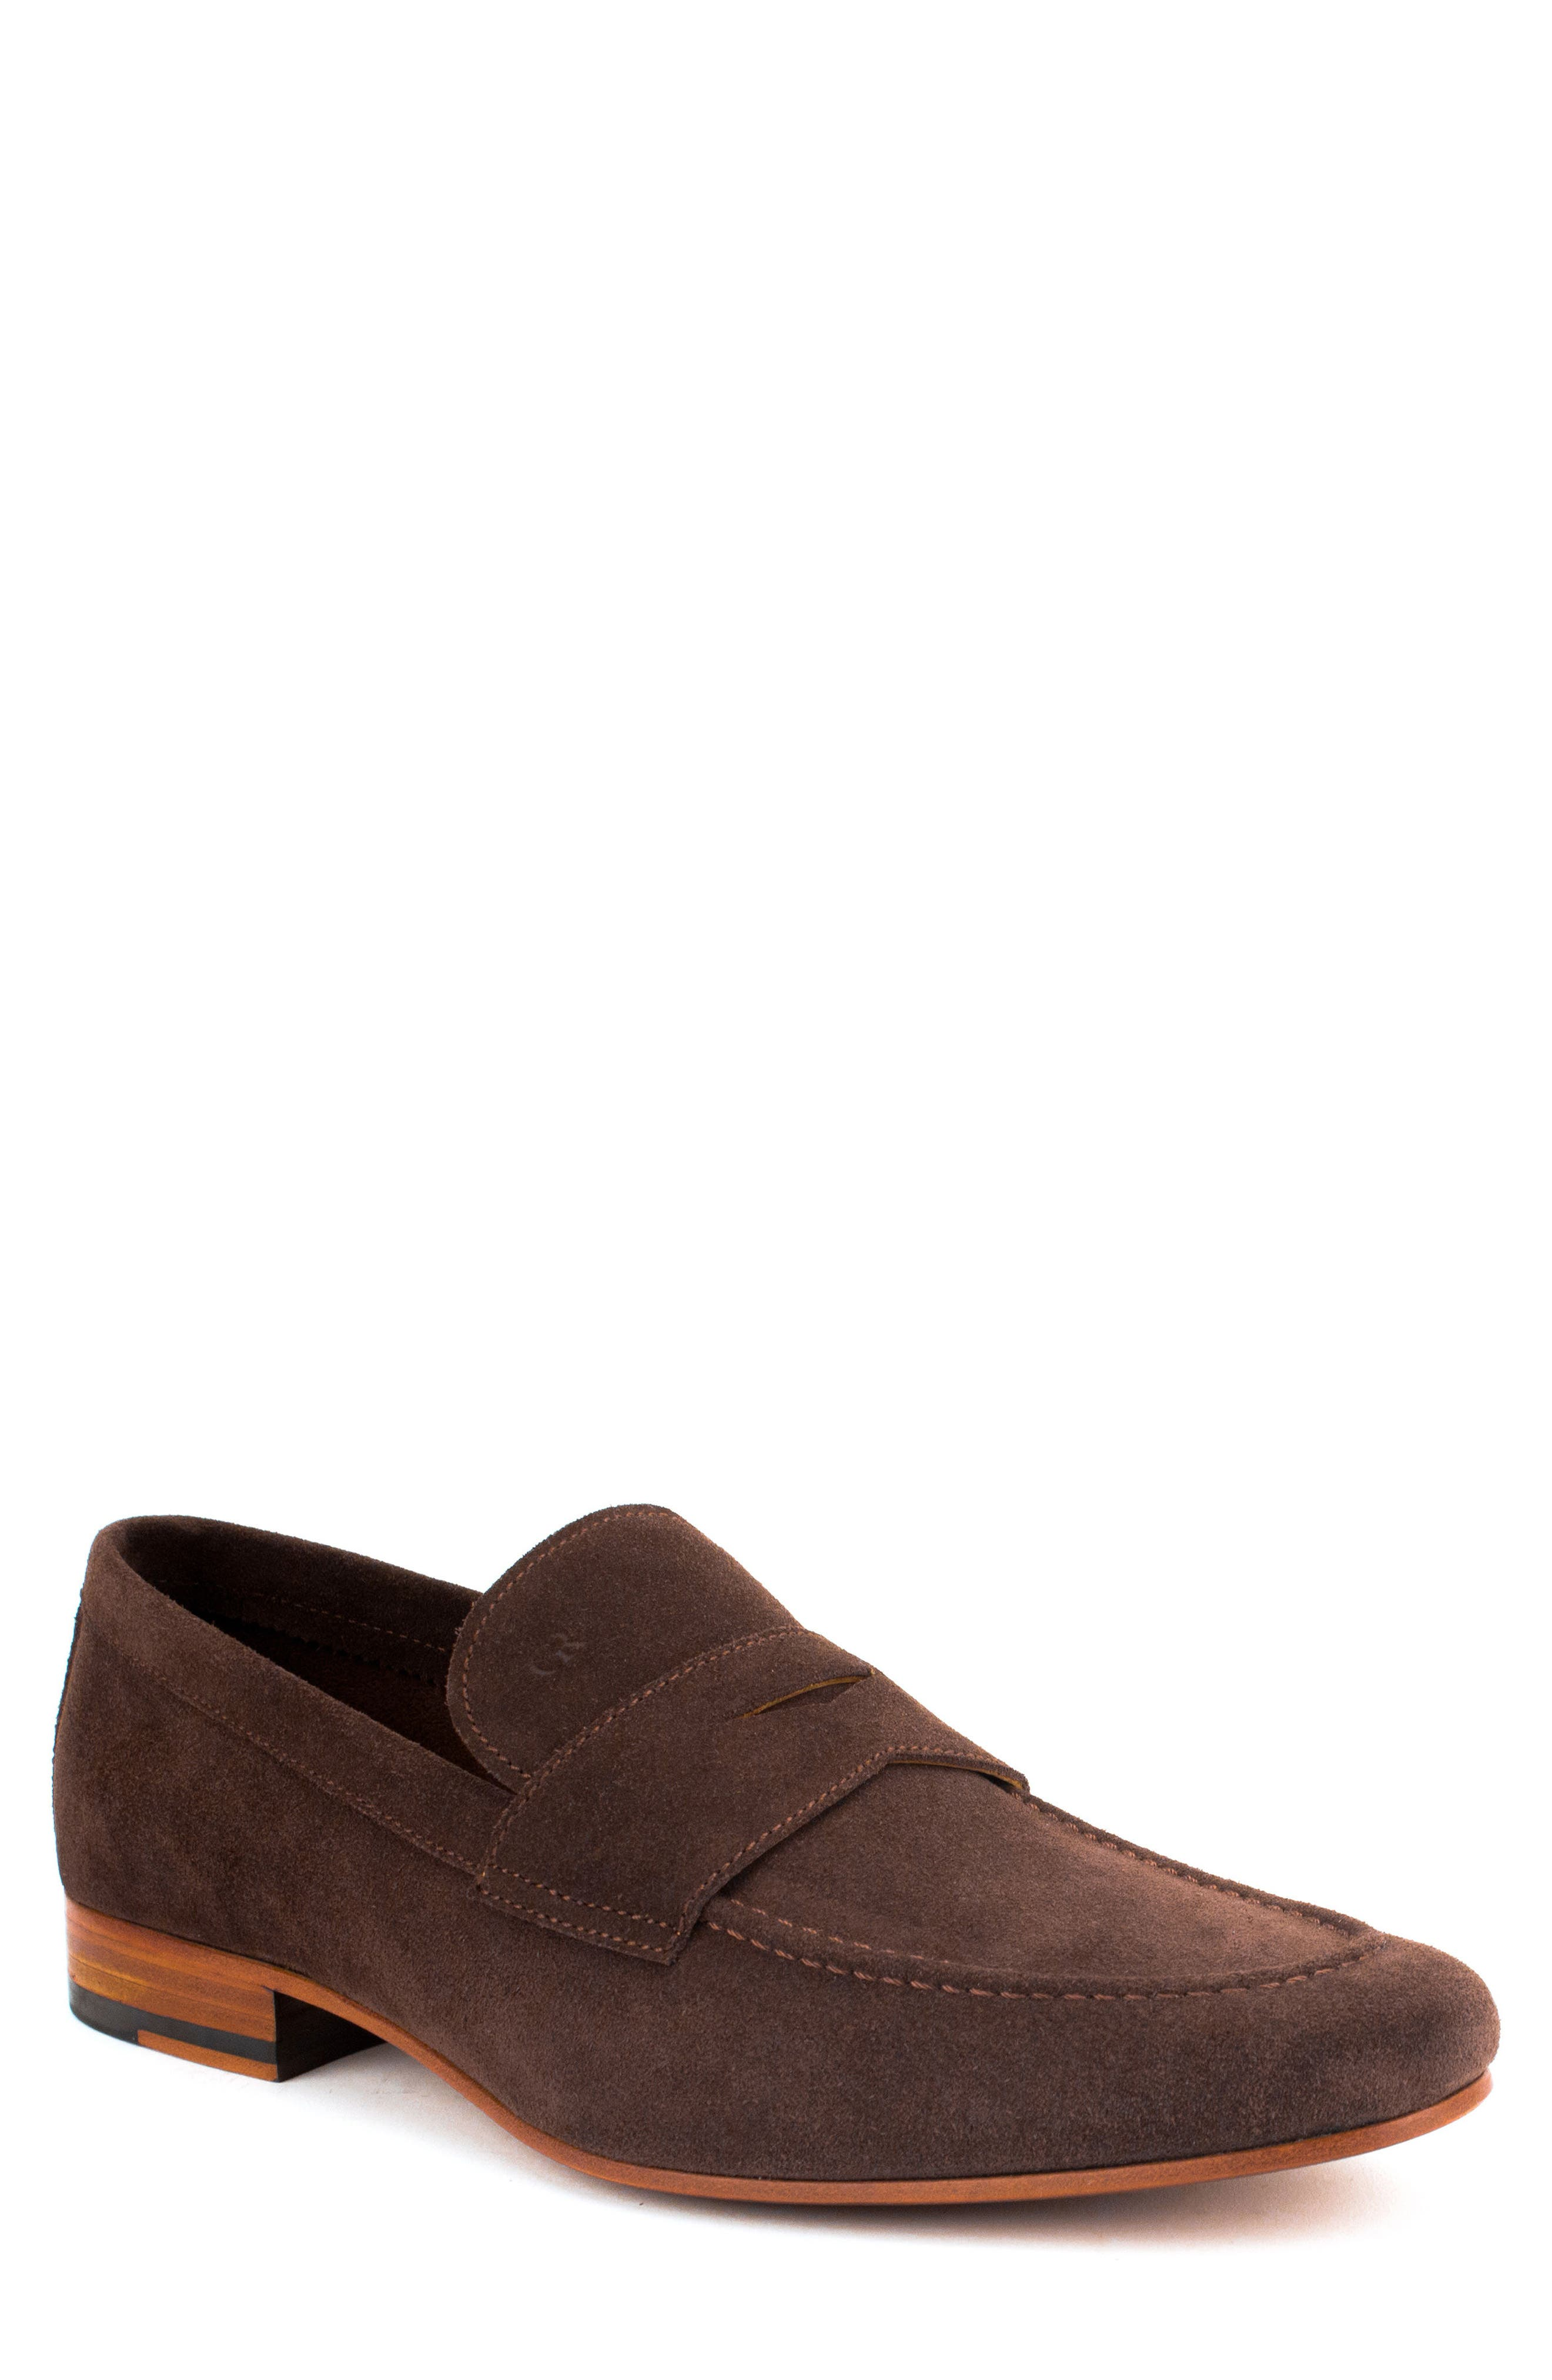 Wilfred Penny Loafer,                             Main thumbnail 1, color,                             206